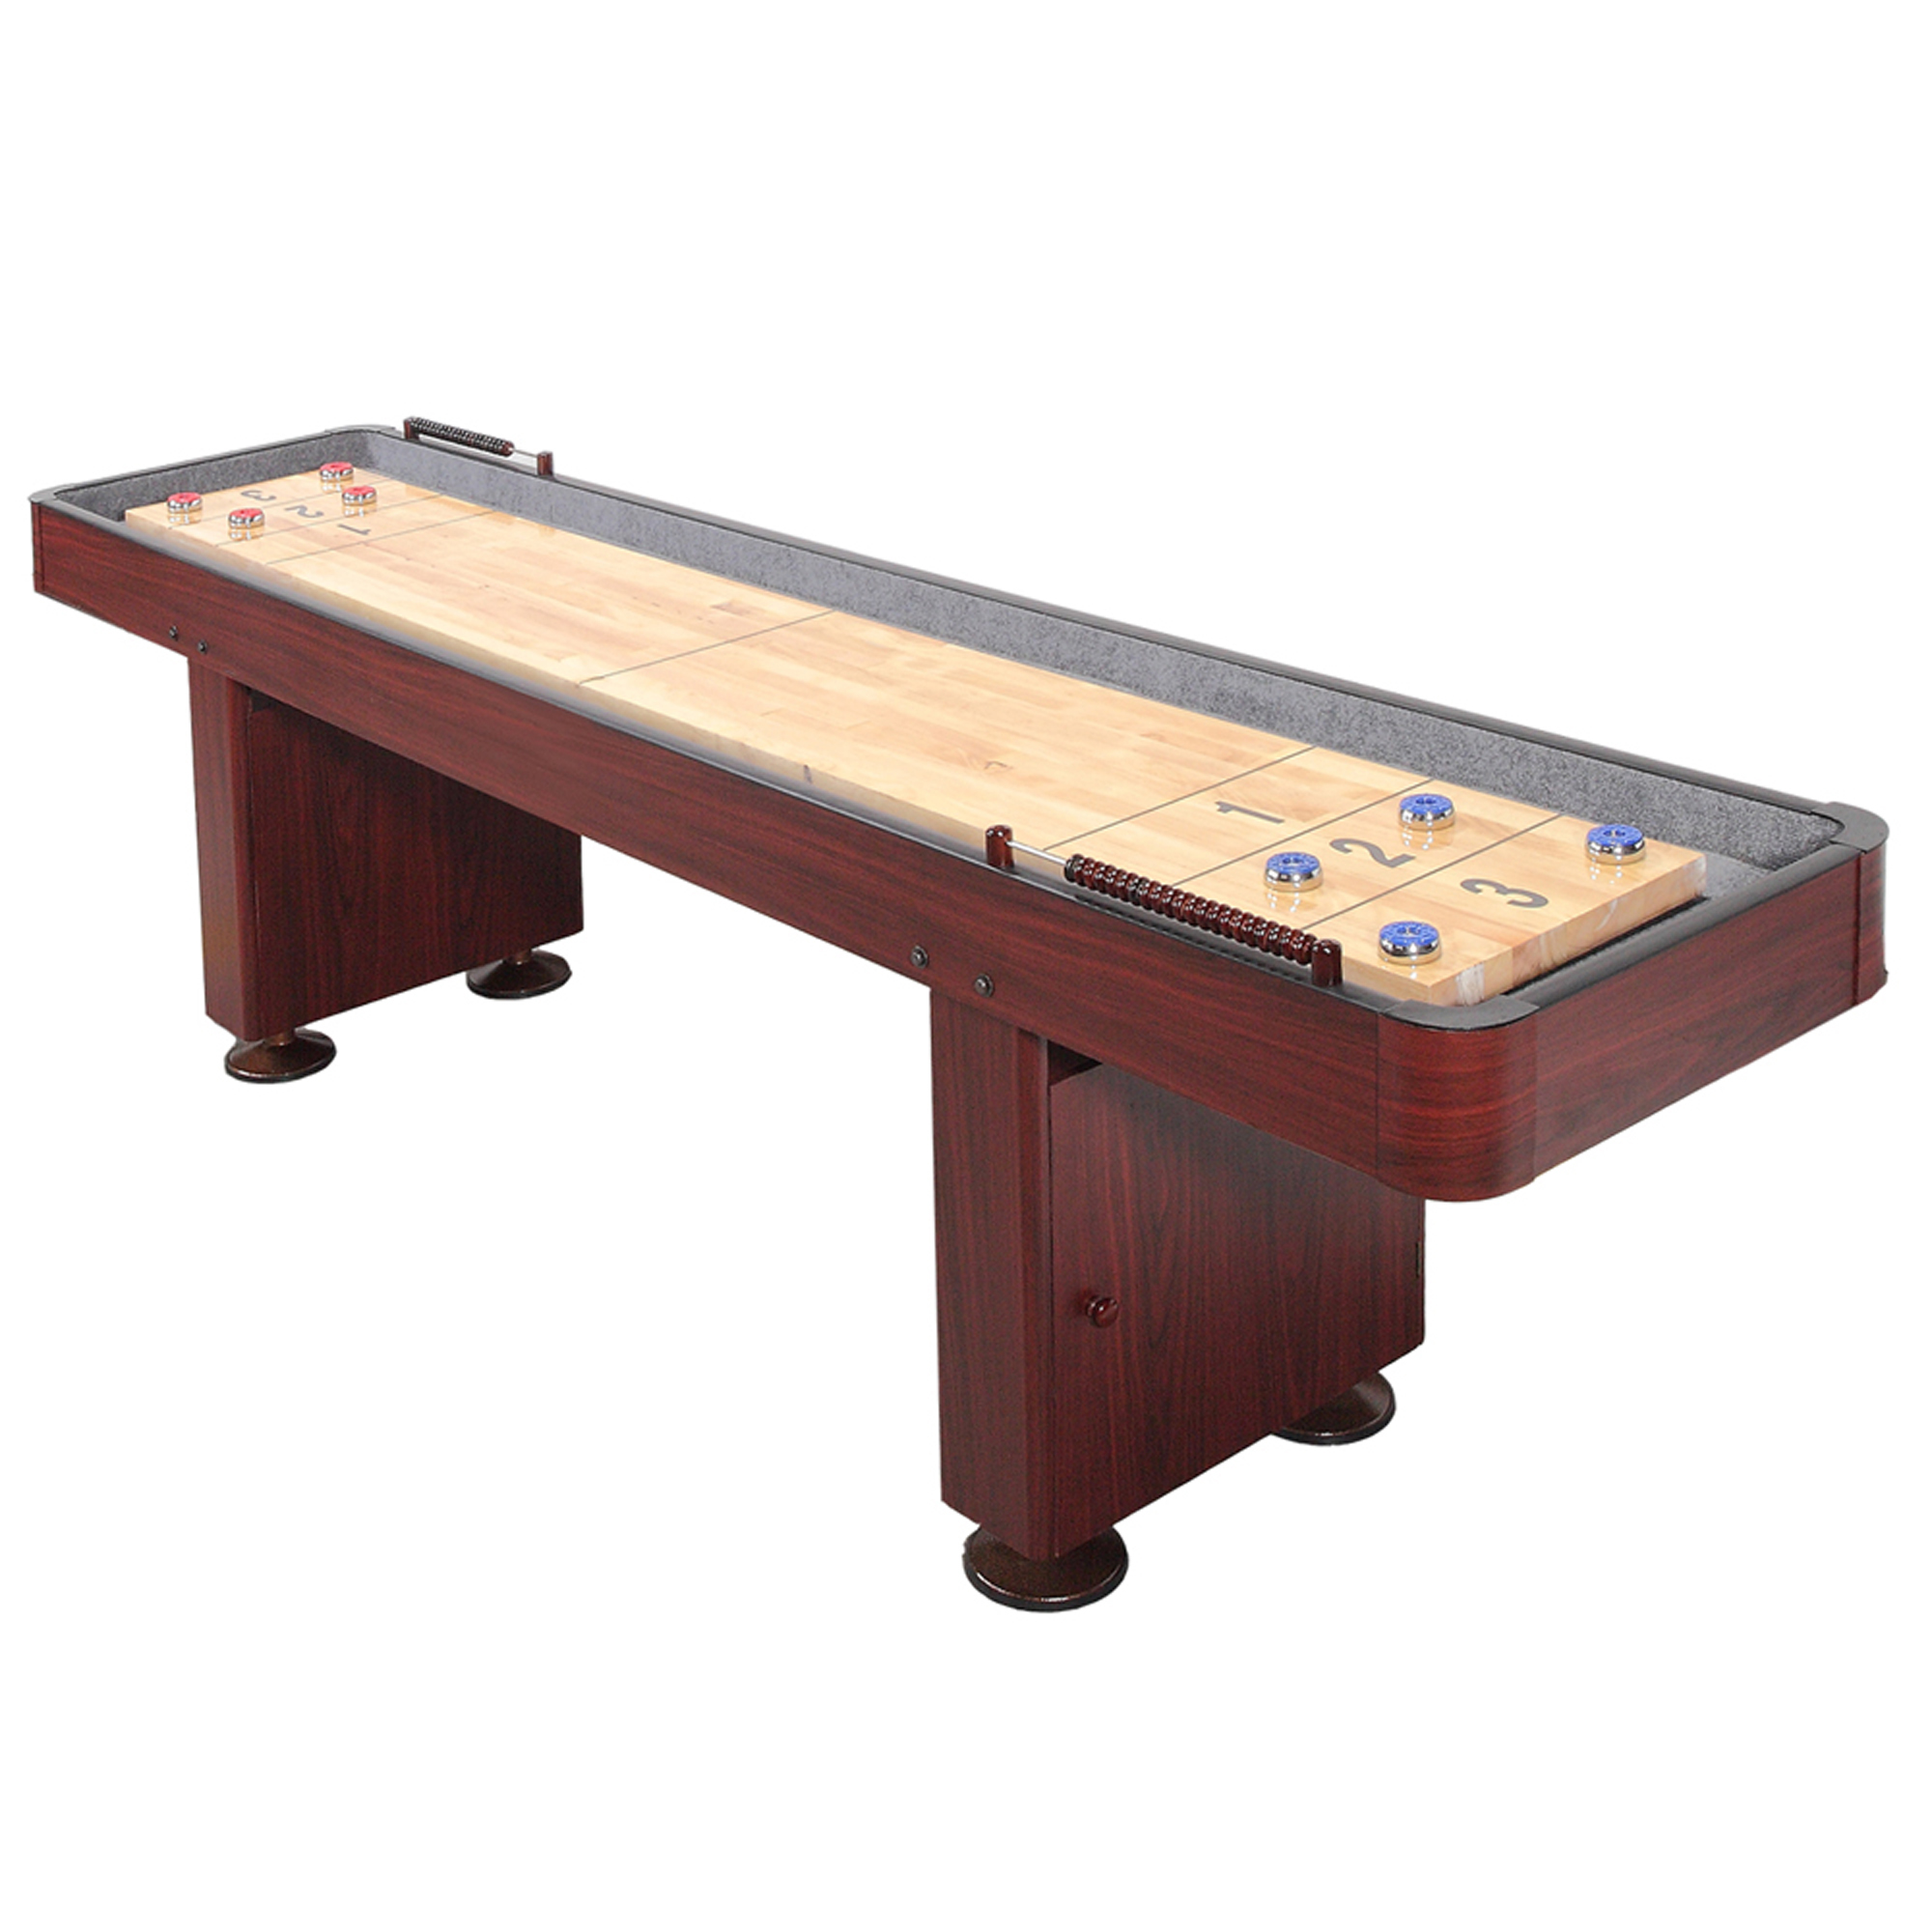 Hathaway Challenger 9 Ft Shuffleboard Table w Dark Cherry Finish